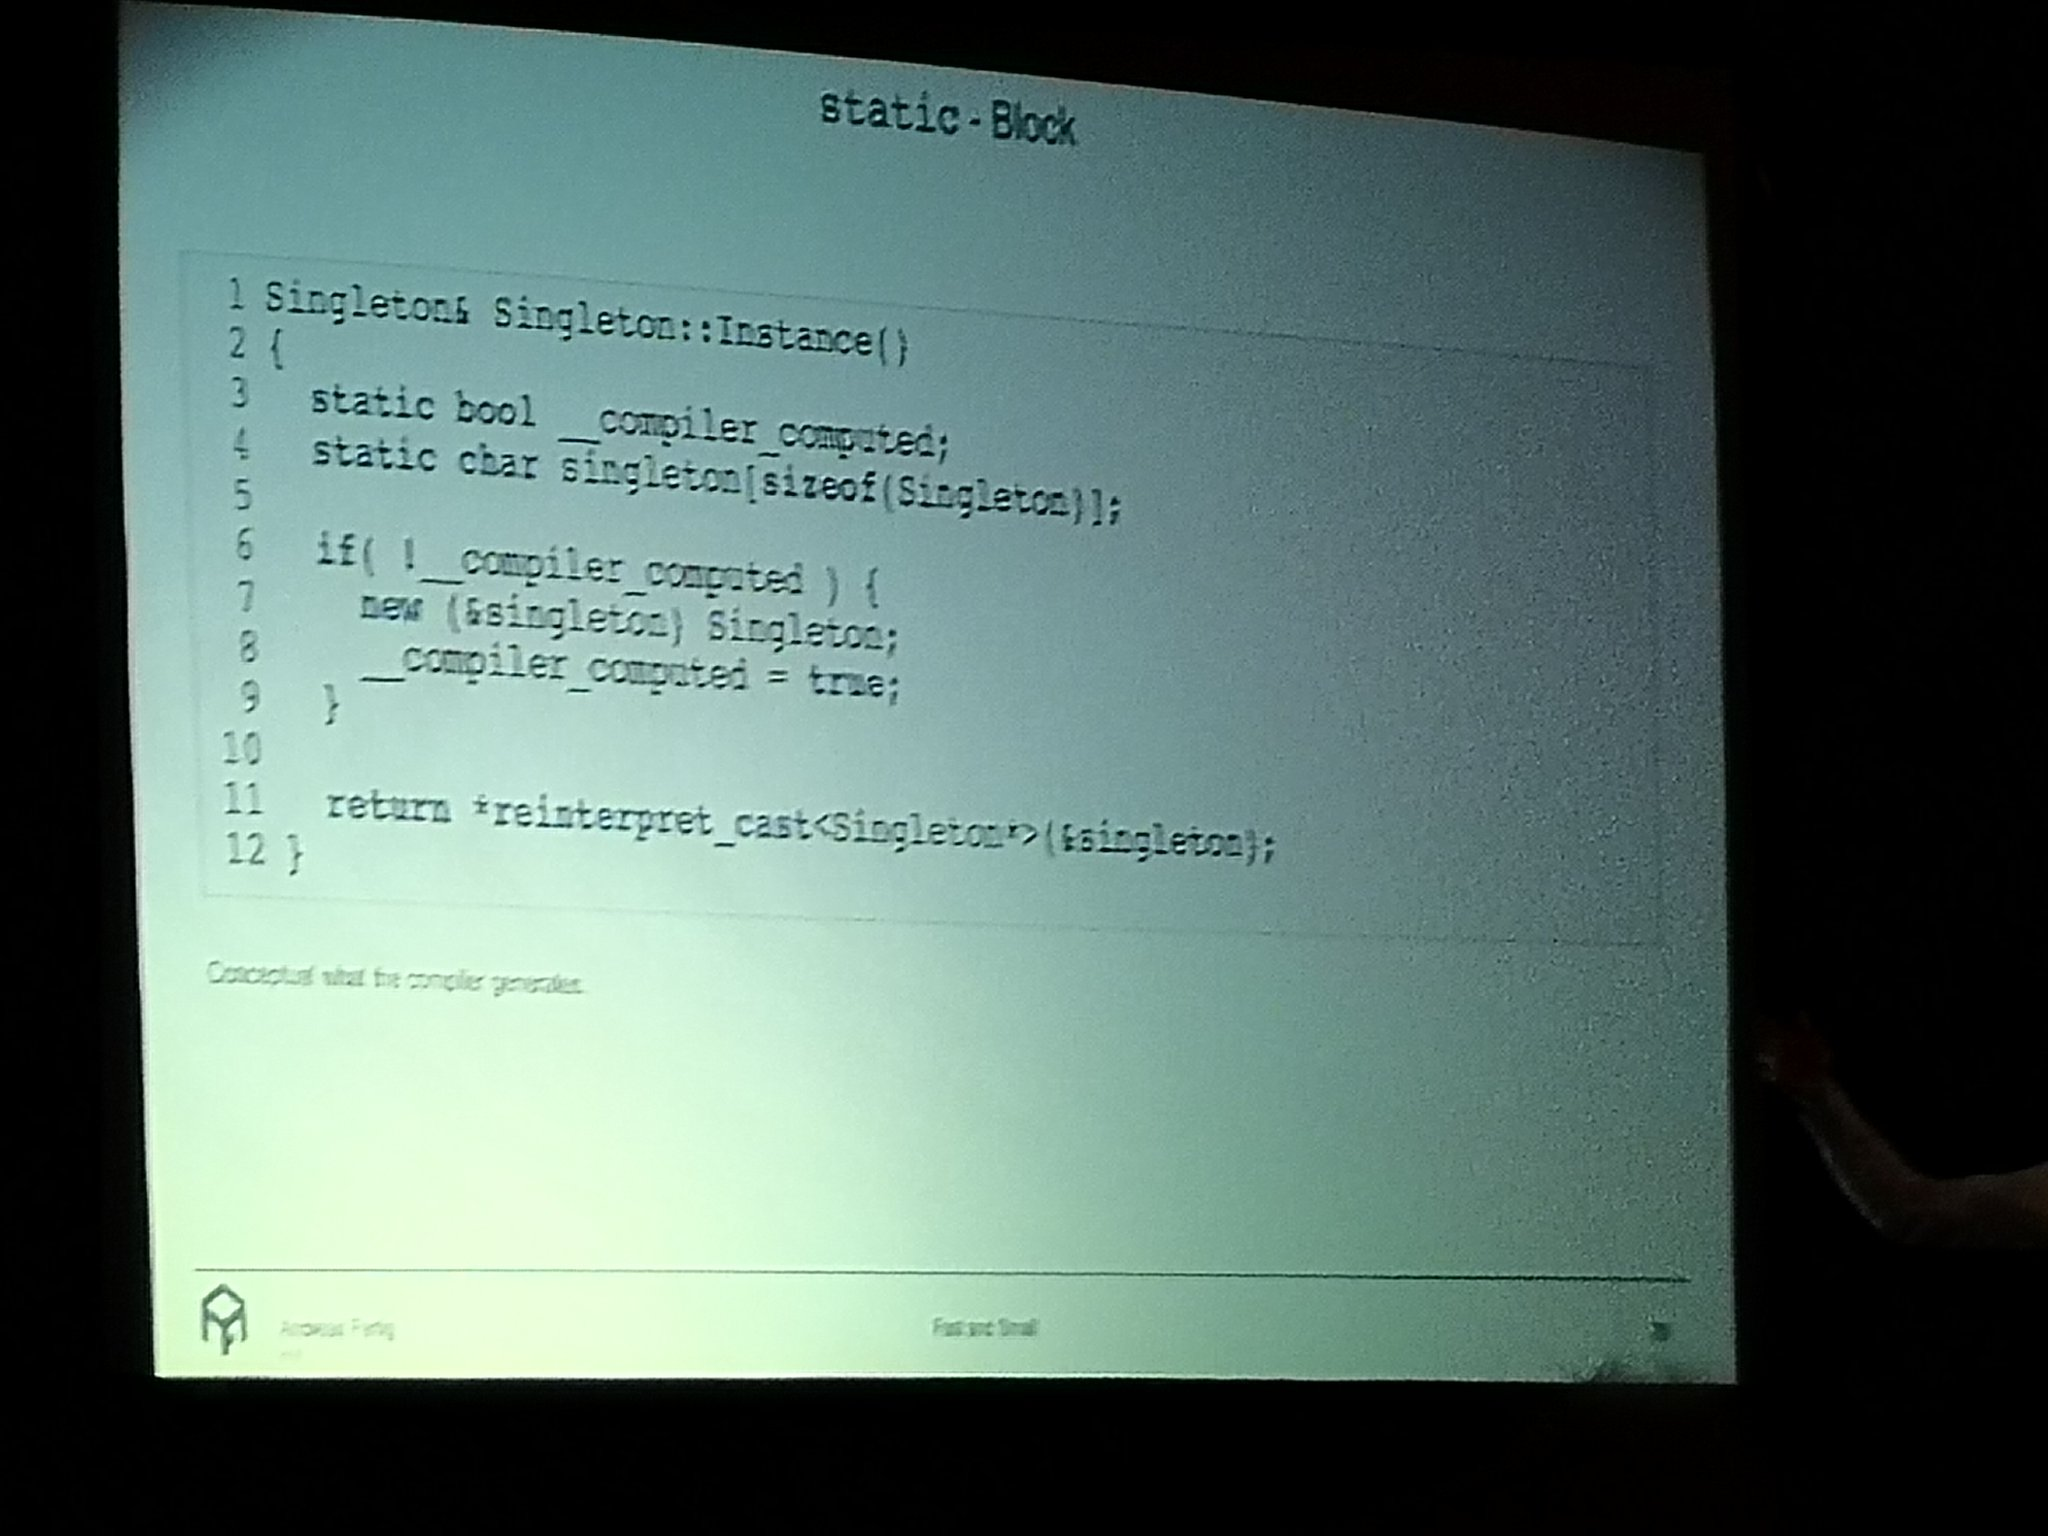 iso c++ 2011 standard. this support is currently experimental and must be